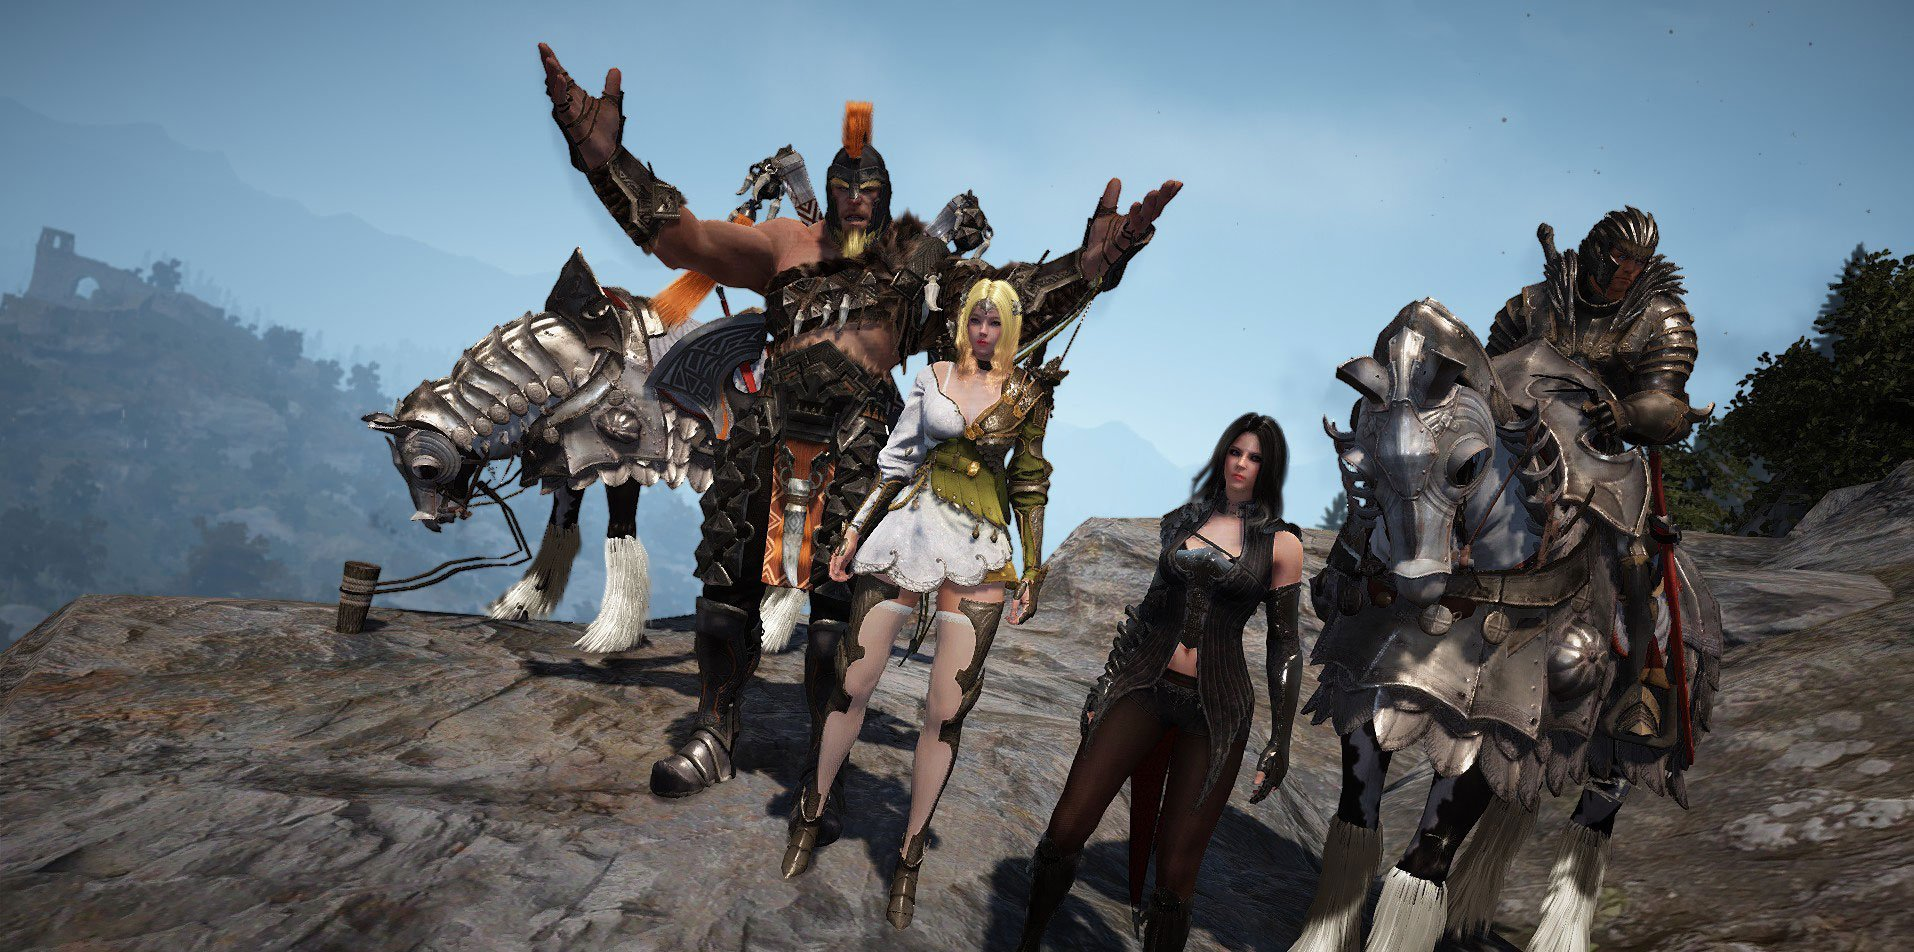 Animal Instincts Watch Online review: black desert online - slant magazine